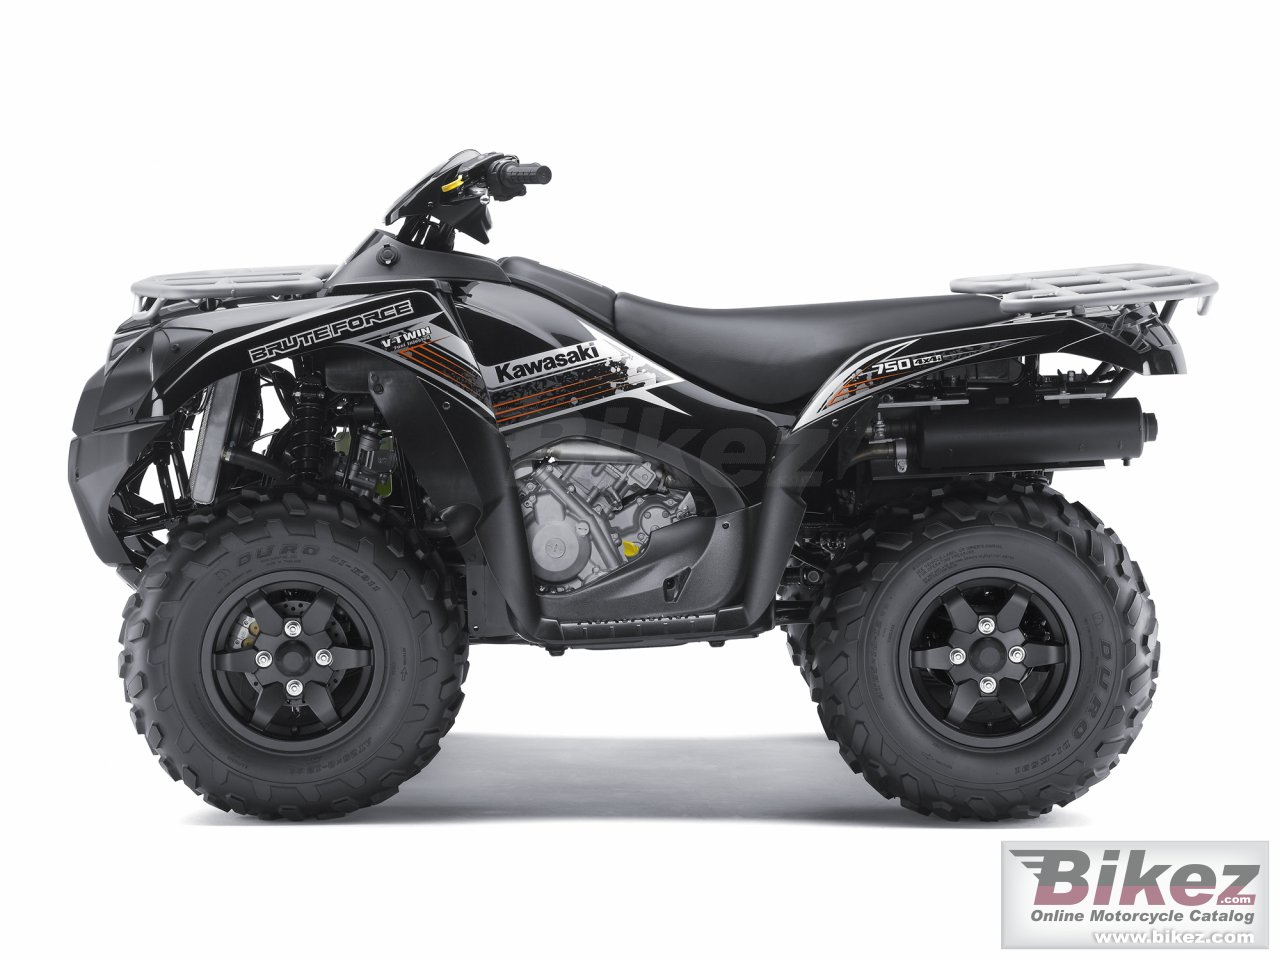 Big Kawasaki brute force 750 4x4i eps picture and wallpaper from Bikez.com